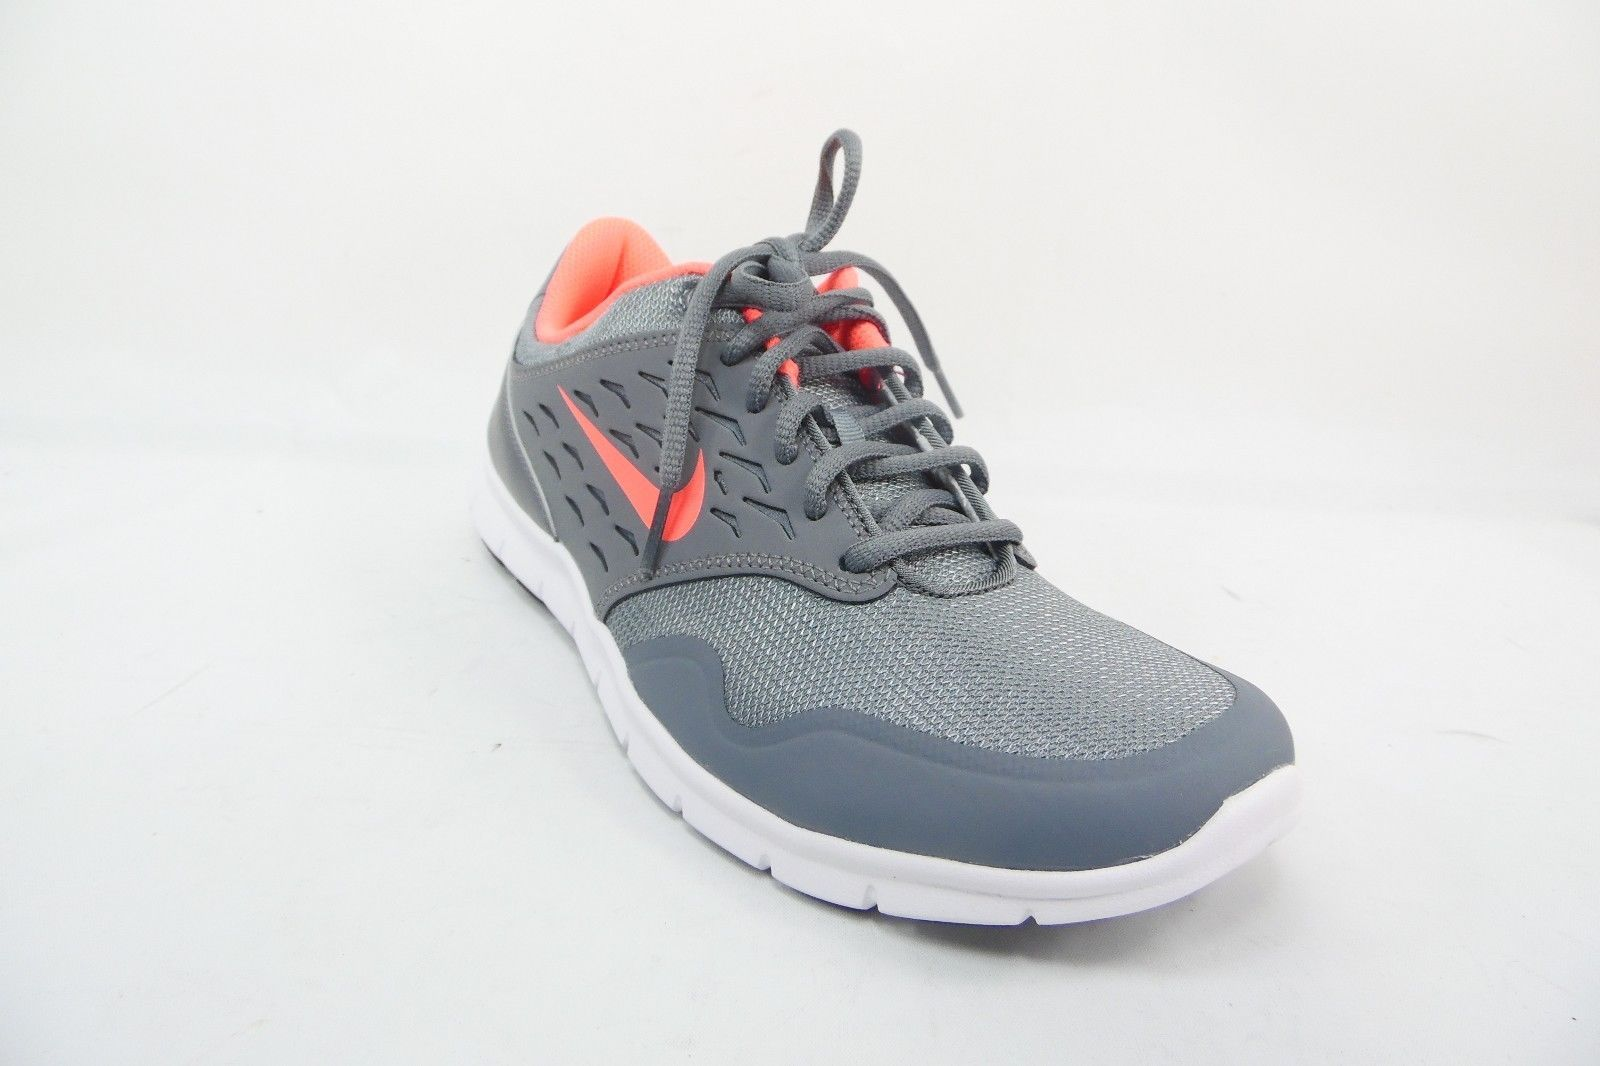 the latest 67087 c4ad0 ... Nike Women s Orive NM Running Shoe, Gray Pink, Size 7 M US. Free  Shipping